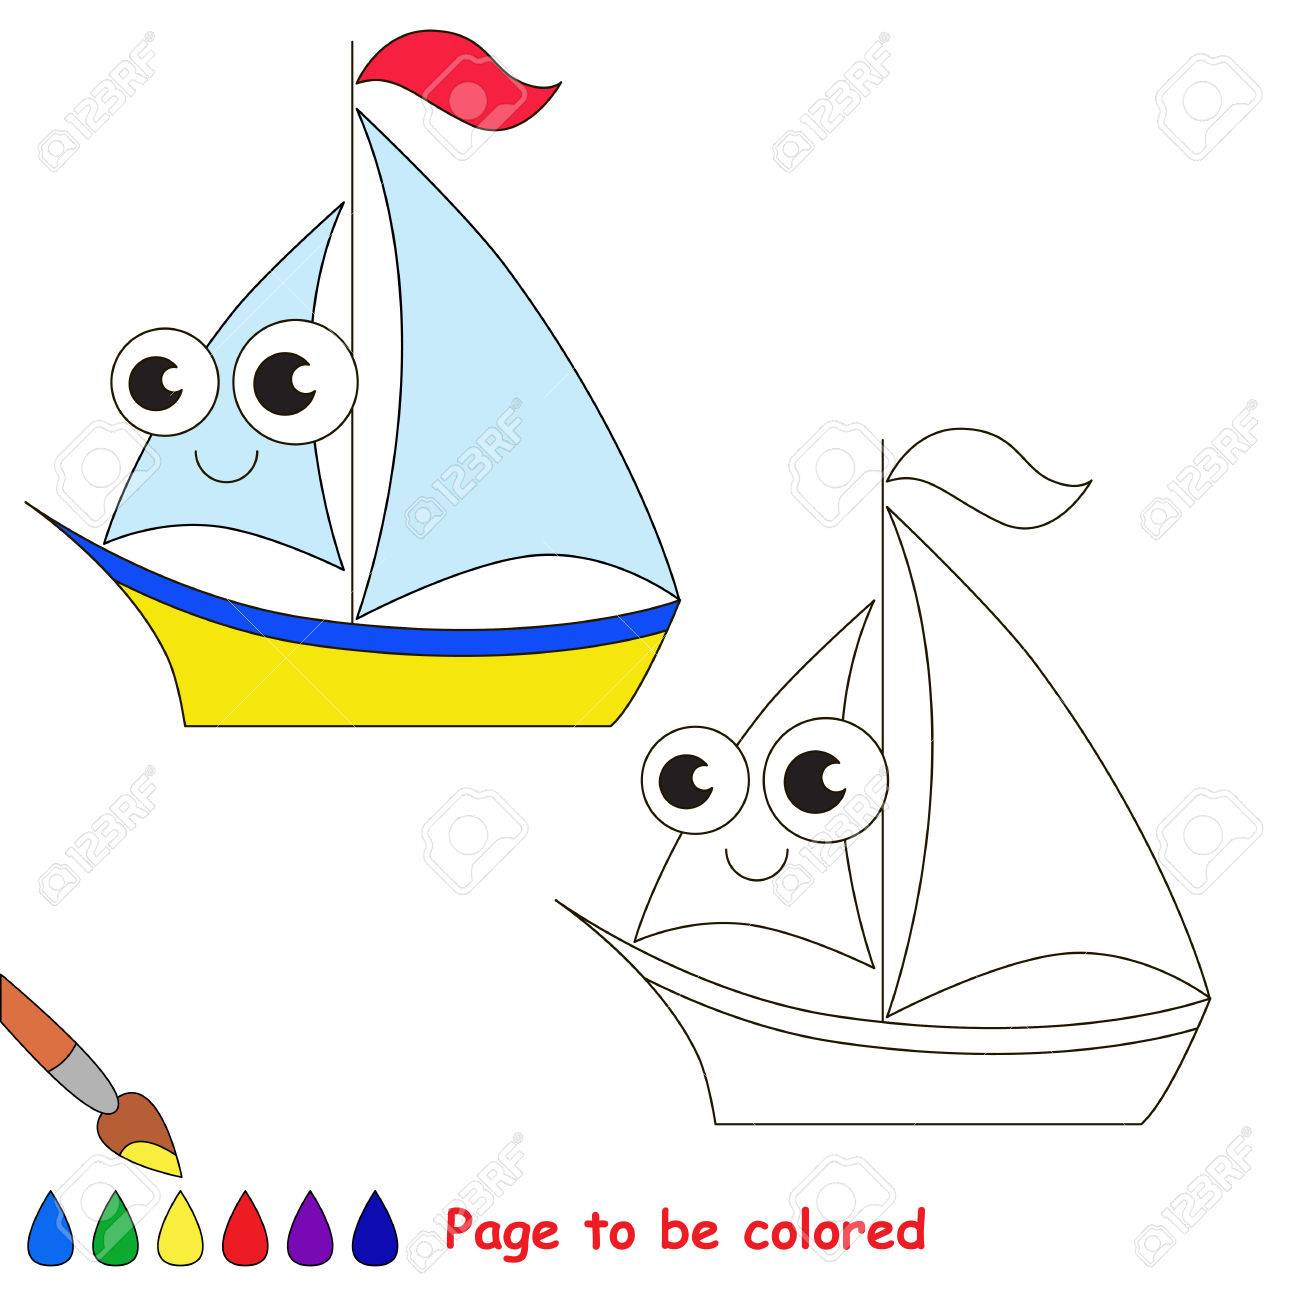 Yellow Boat To Be Colored. Coloring Book To Educate Kids. Learn ...